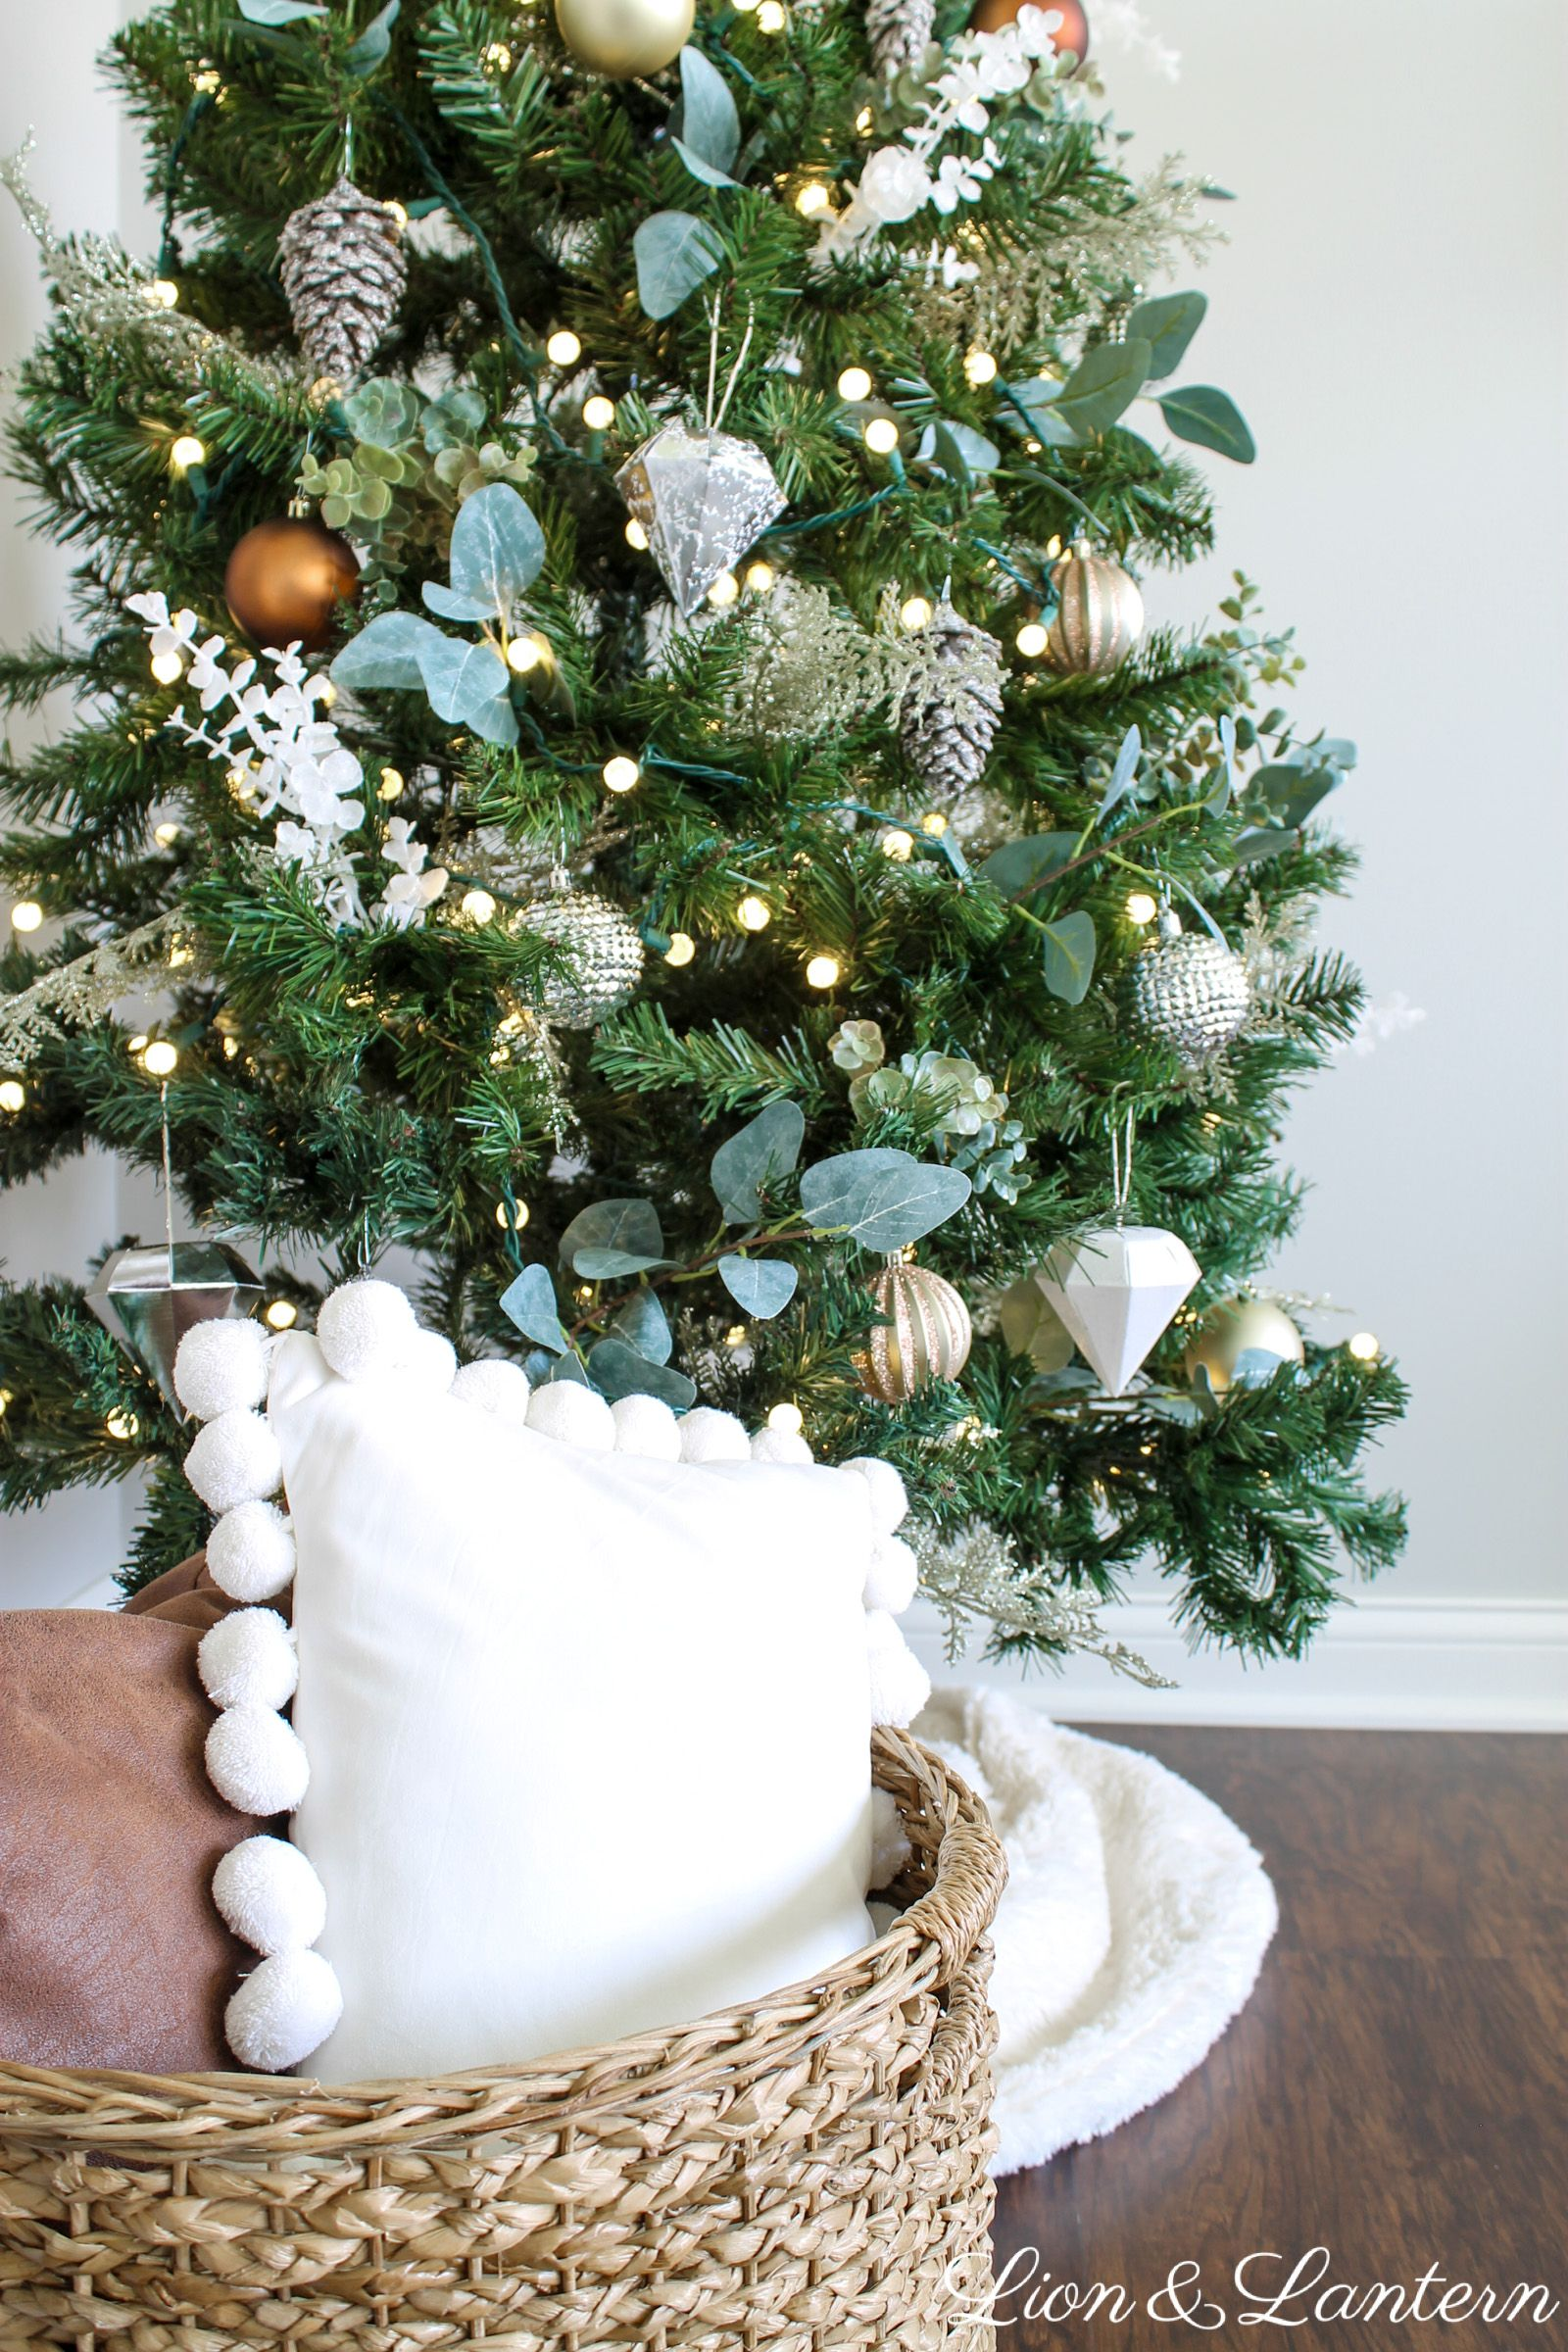 Who Says Christmas Trees Need To Cost A Fortune Dress Up A Simple Tree With Faux Eucalyptus Ste Rustic Christmas Diy Christmas Decor Diy Simple Christmas Tree